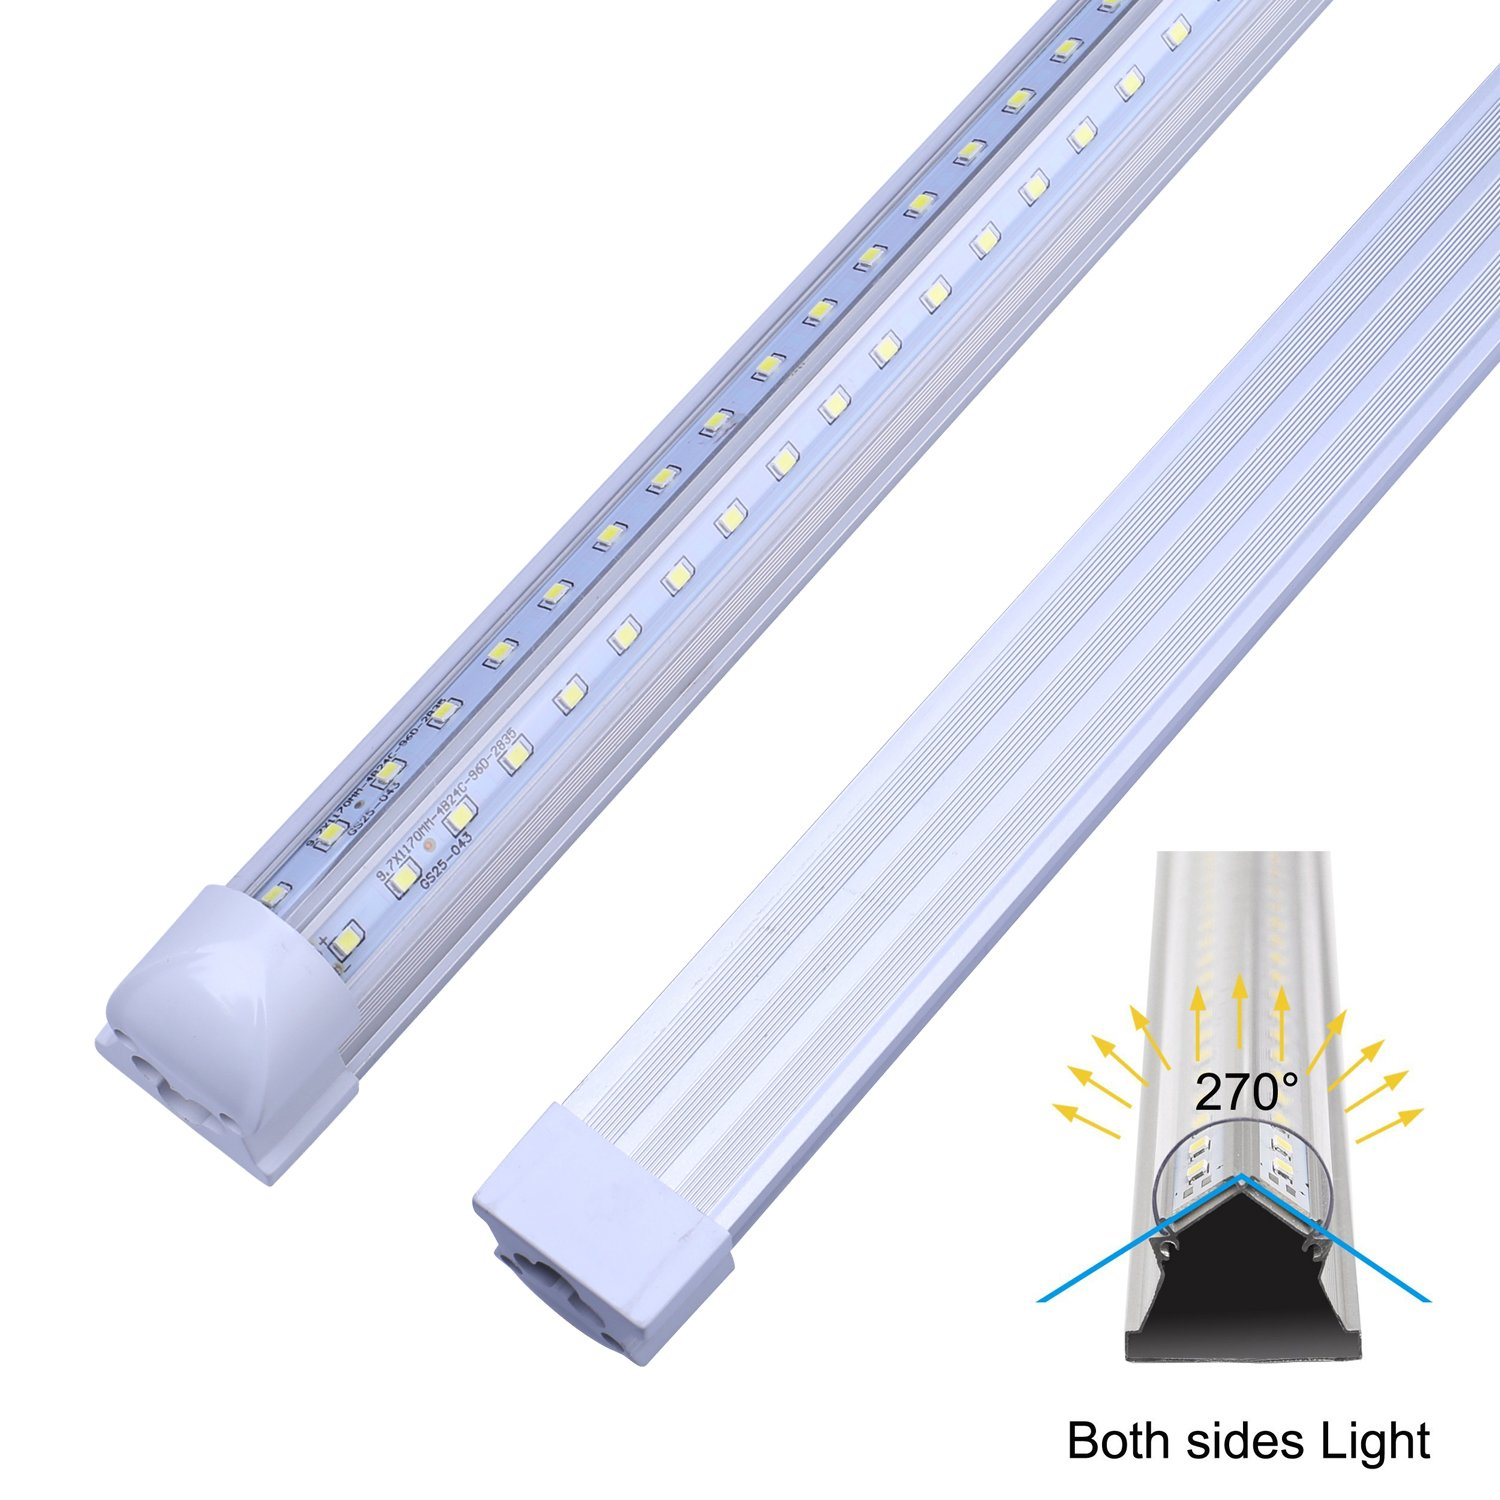 V Shape Integrated LED Tube Light, 8FT 72W (150W Fluorescent Equivalent), Works Without T8 Ballast, Plug and Play, Clear Lens Cover, Cold White 6000K Pack of 4 by Jomitop (Image #3)